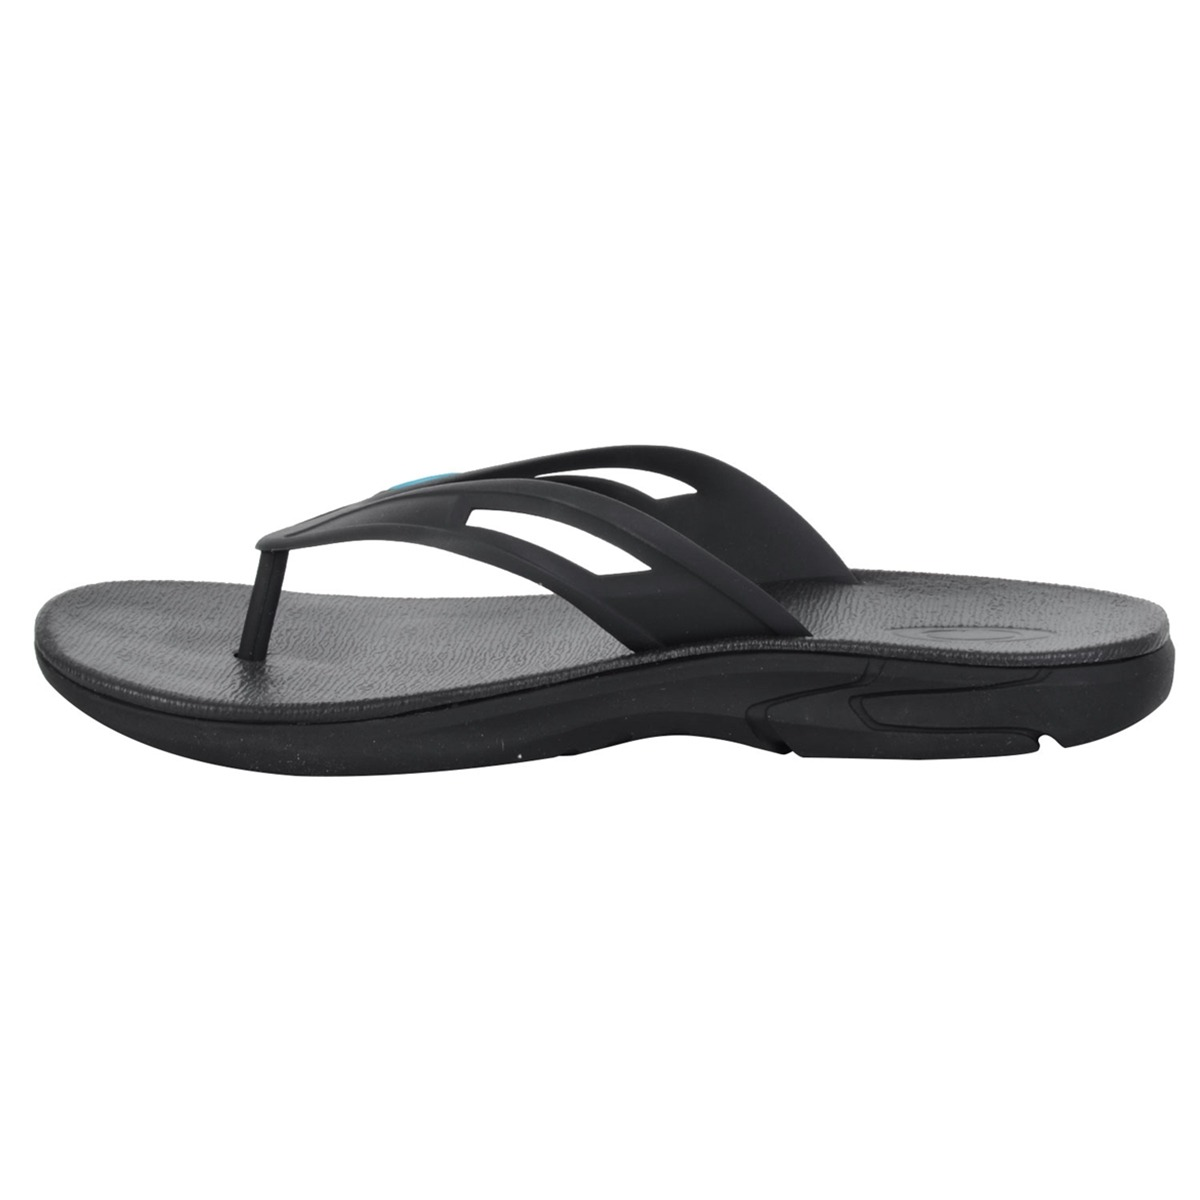 f002fa1090237 chinelo oakley rest preto. Carregando zoom.